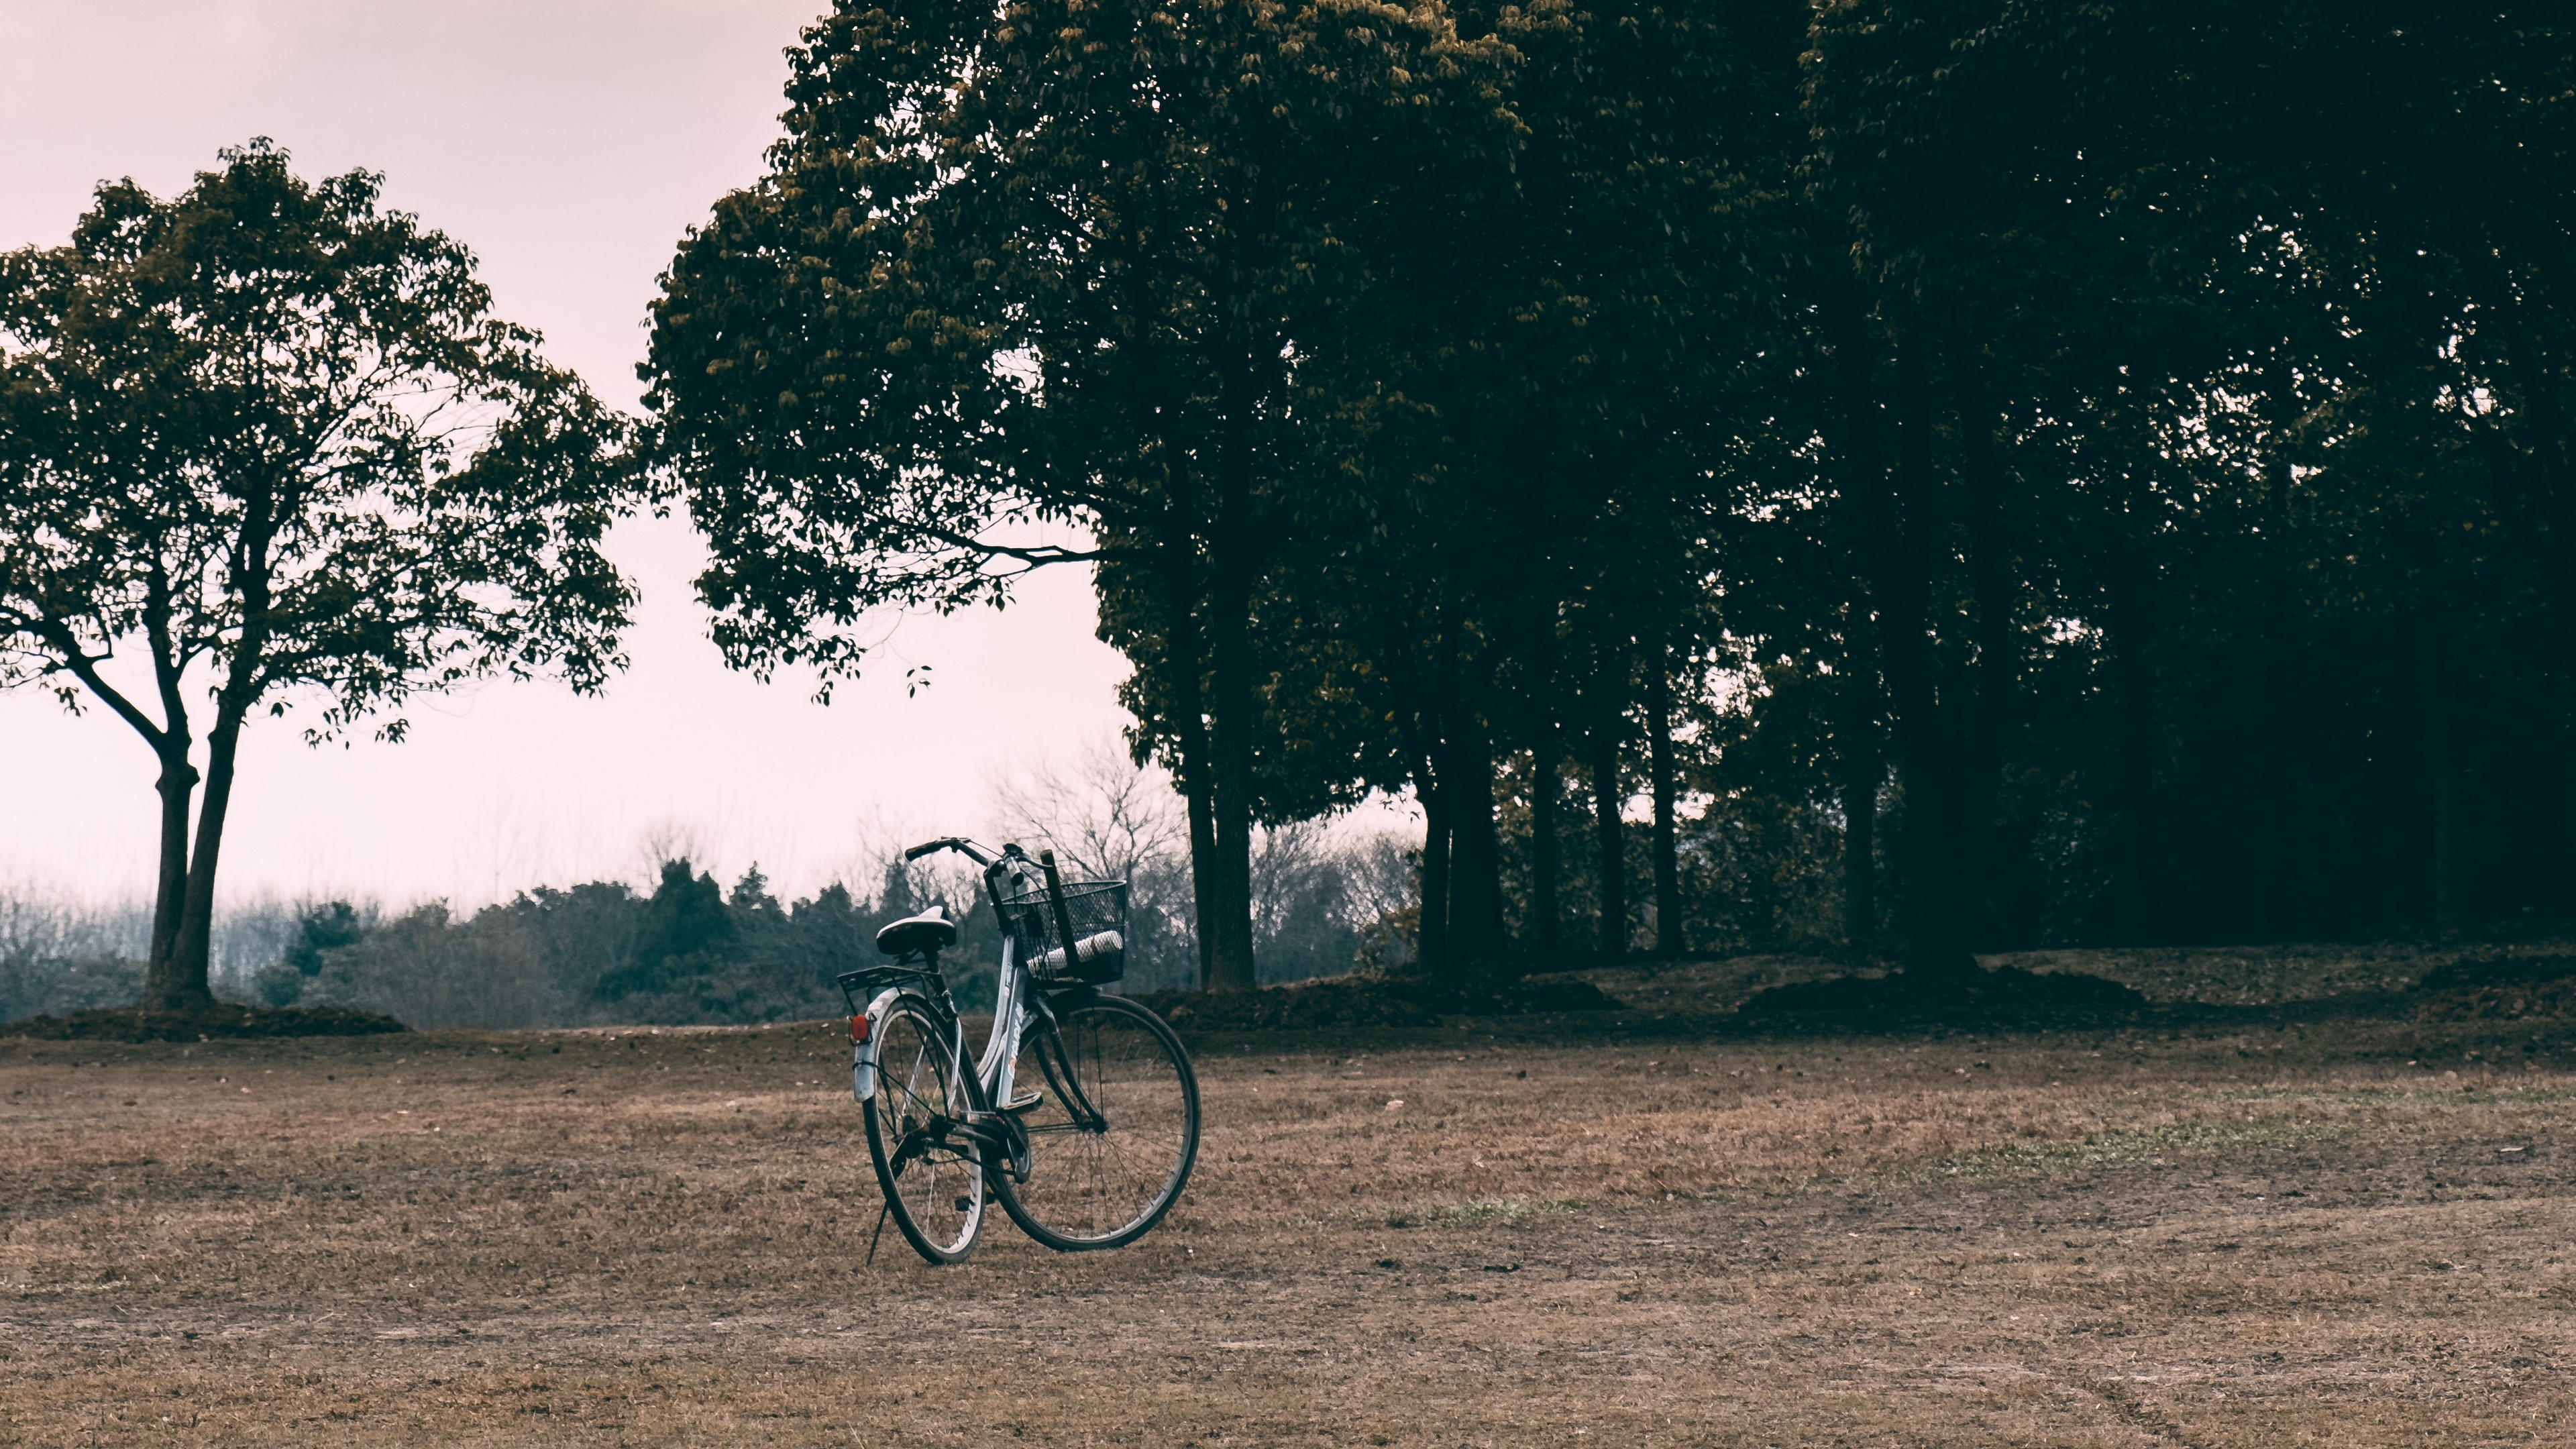 bicycle trees grass clearing clouds overcast 4k 1541116892 - bicycle, trees, grass, clearing, clouds, overcast 4k - Trees, Grass, Bicycle